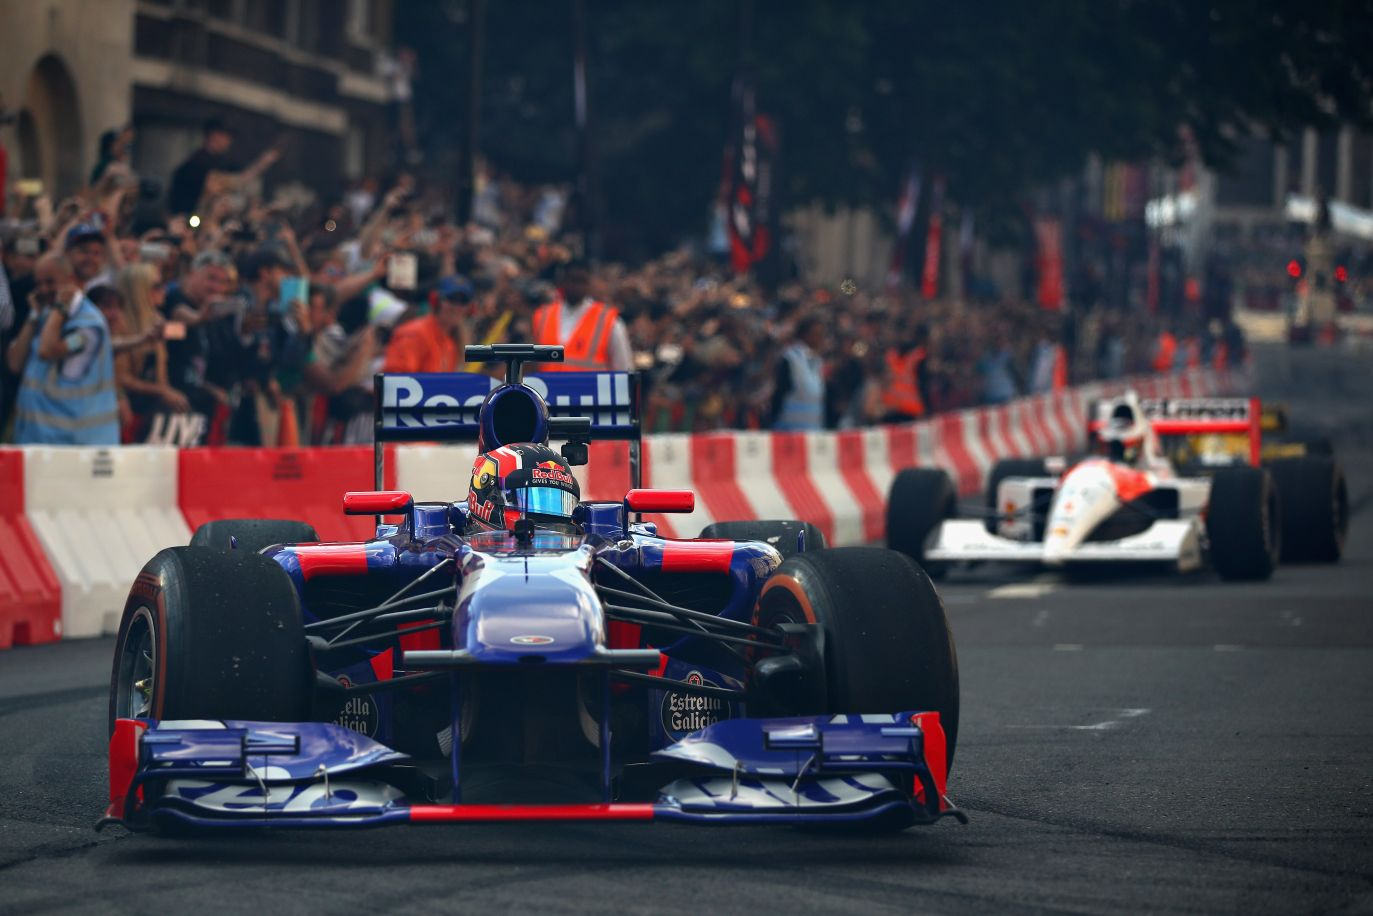 (fot. Clive Mason/Getty Images for Formula 1)